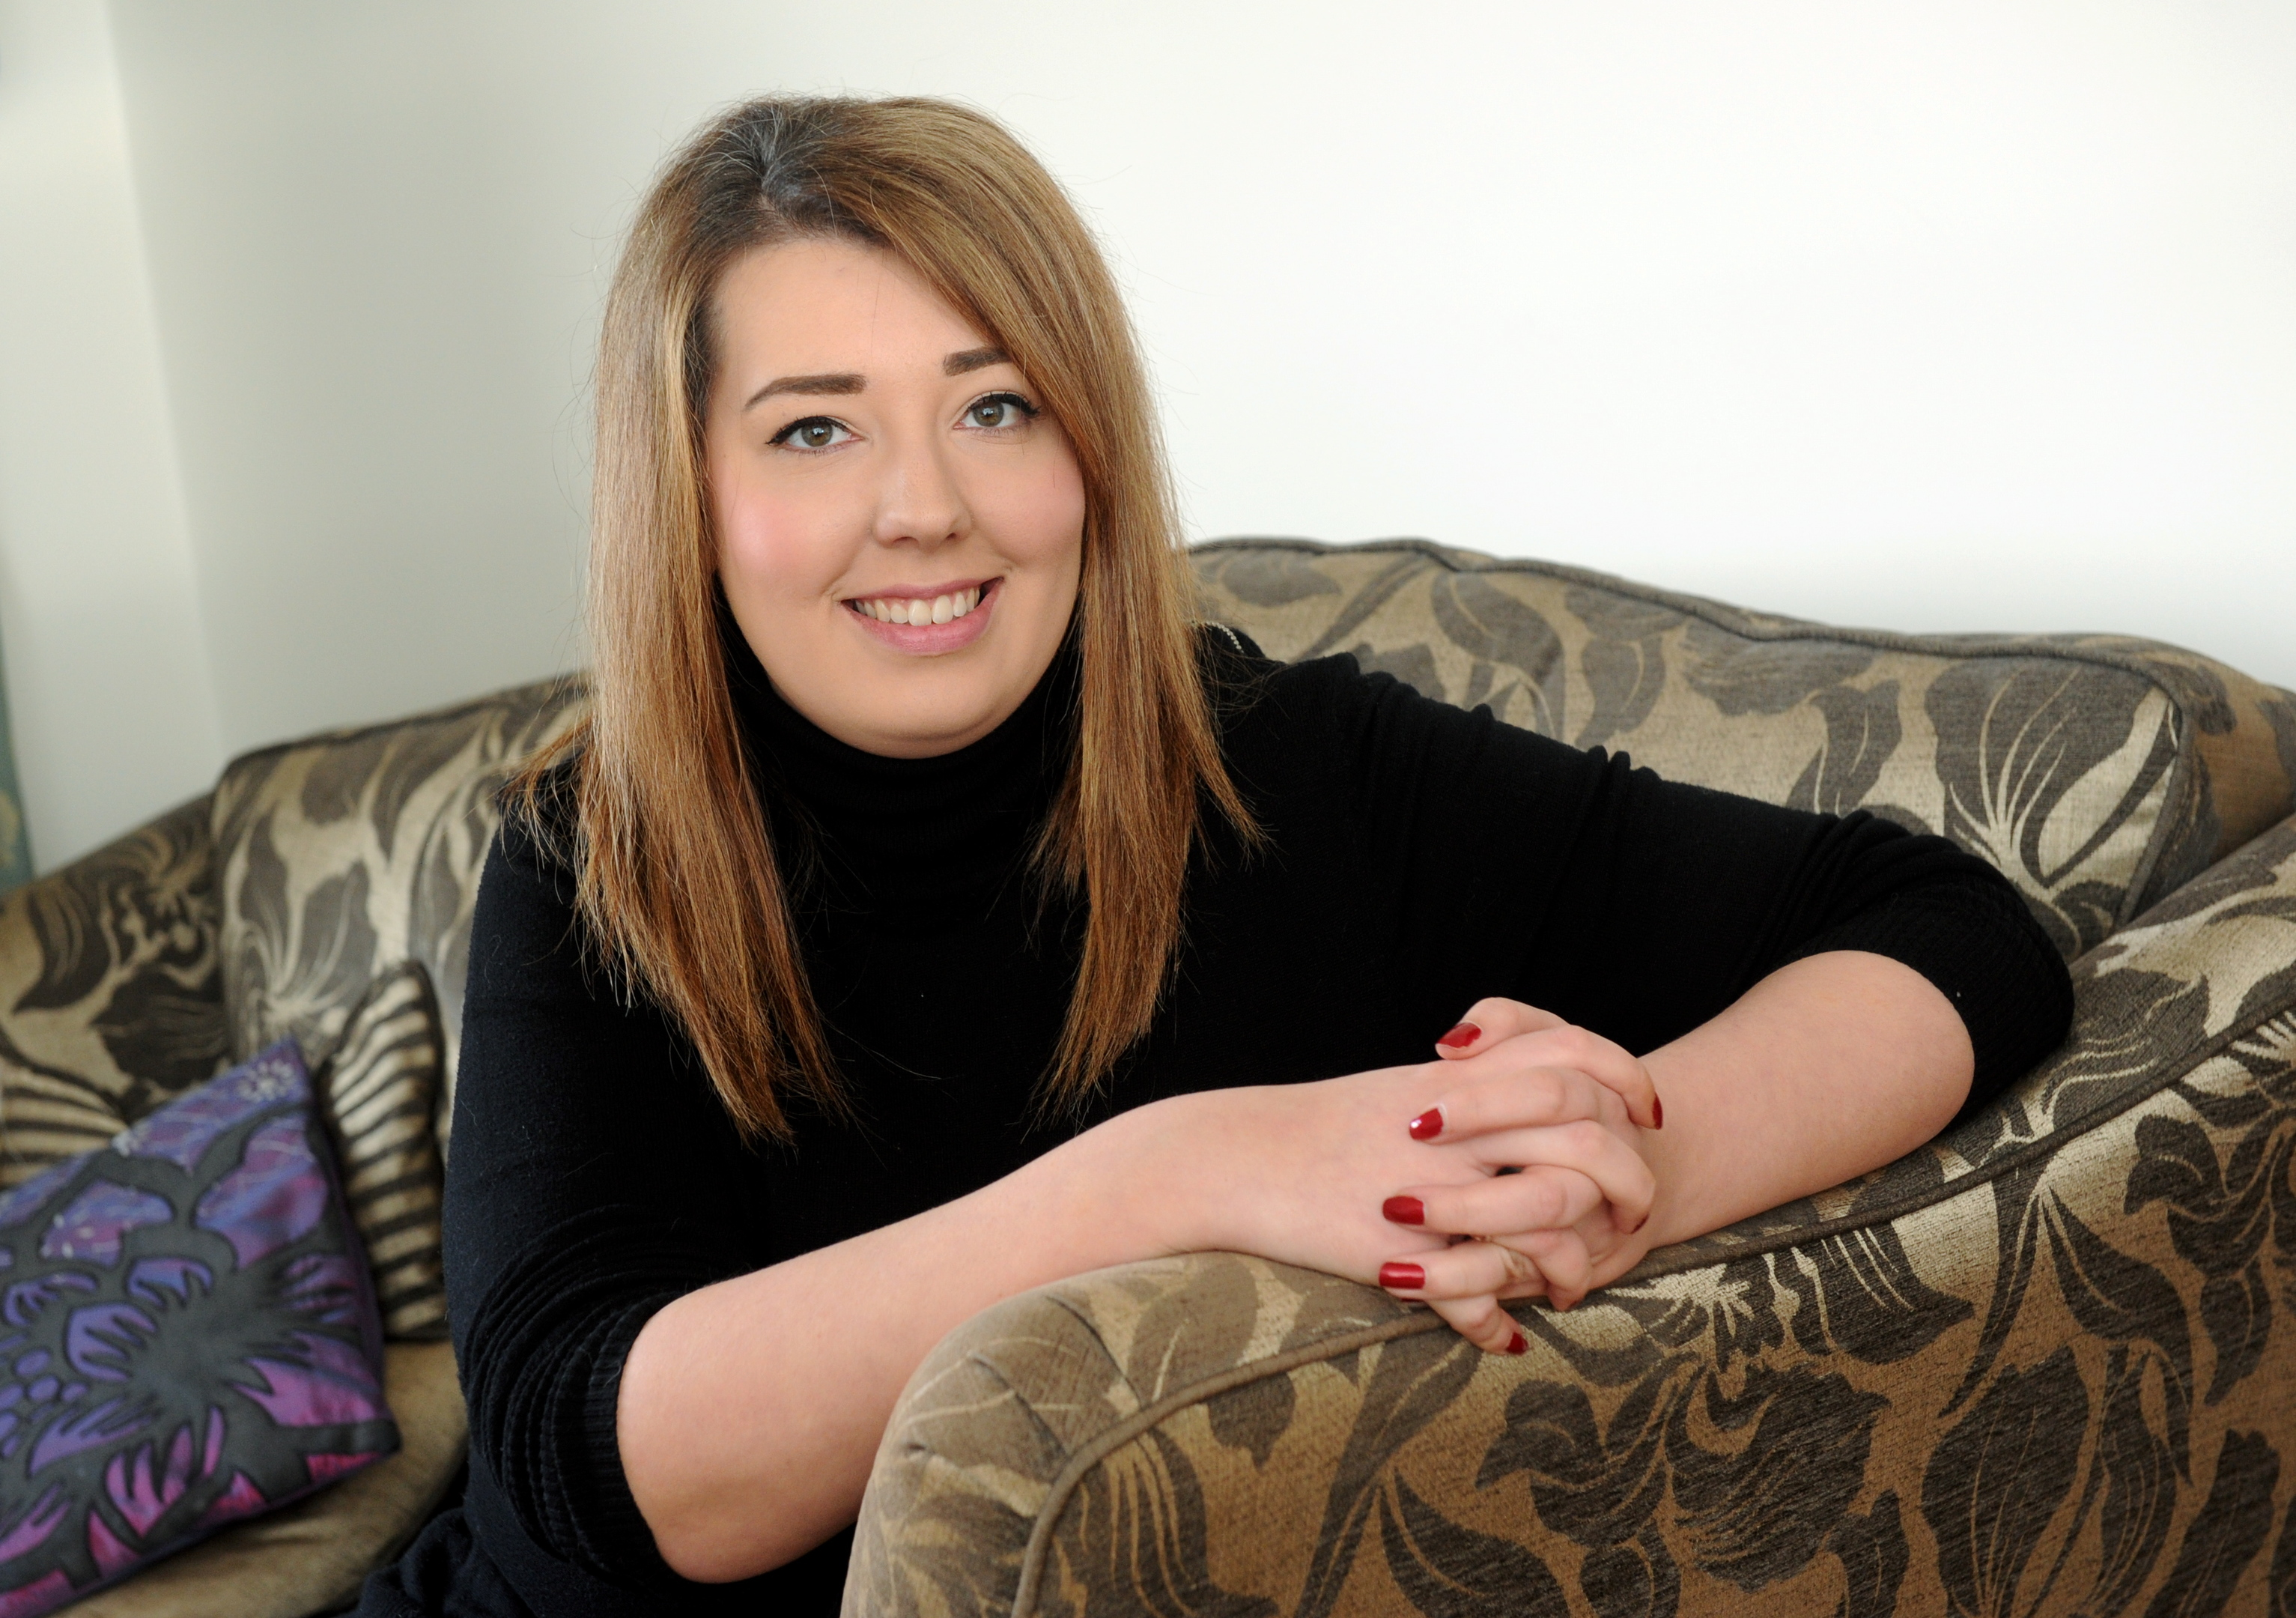 Nadia Cruickshank is determined to live life to the fullest despite her tumour diagnosis.